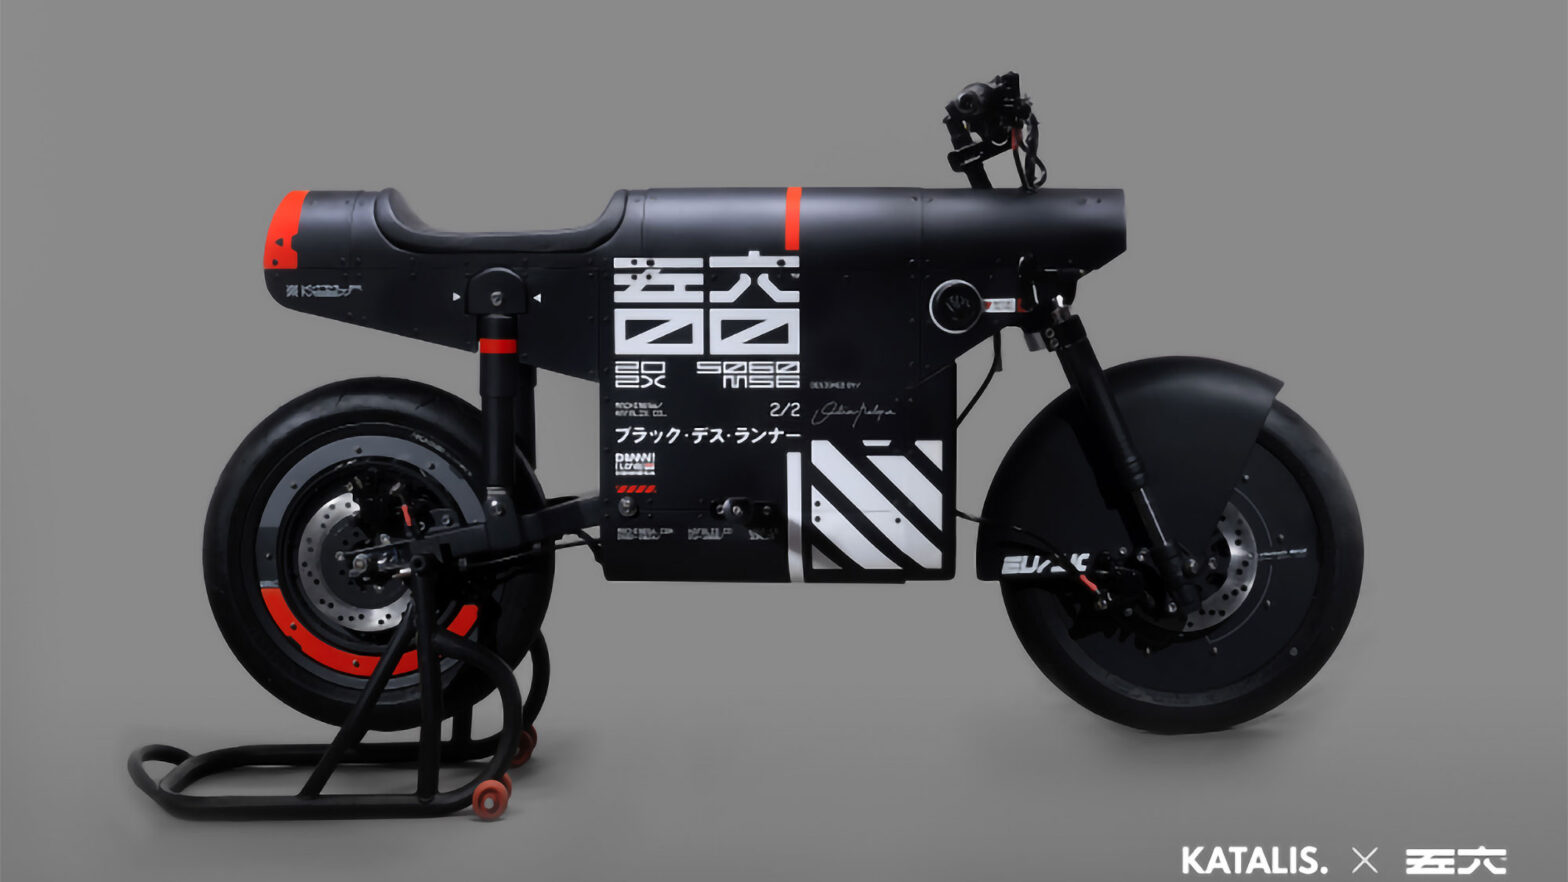 Katalis x 56 EV-1K Electric Bike